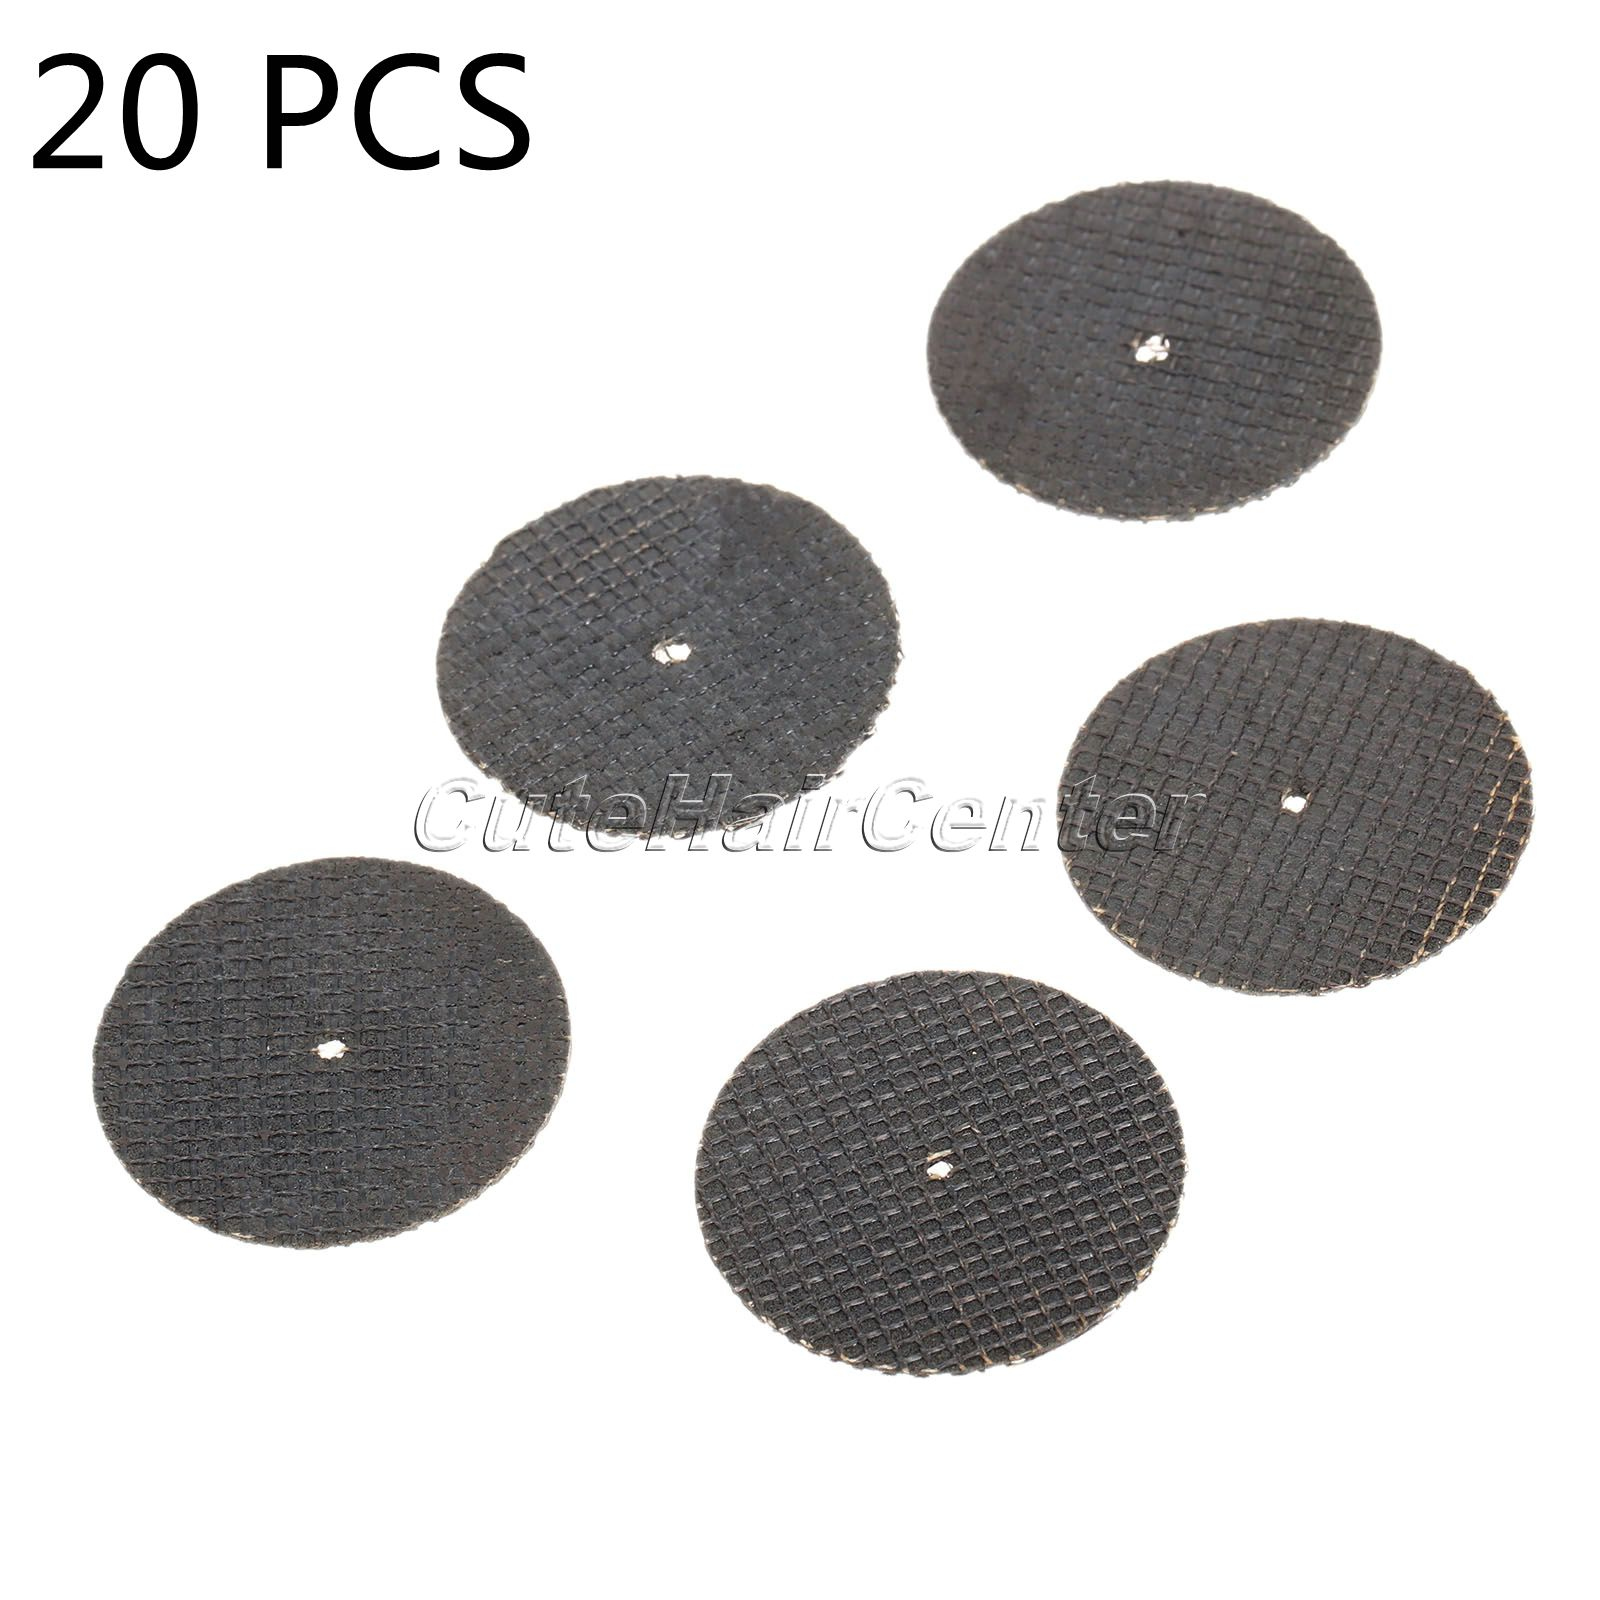 20 pcs Fibre Resin Cut Off Wheel Disc Dual Cutting Wheel Sanding Discs for Dremel Rotary Tools Abrasive Tools for Cutting 38mm(China (Mainland))